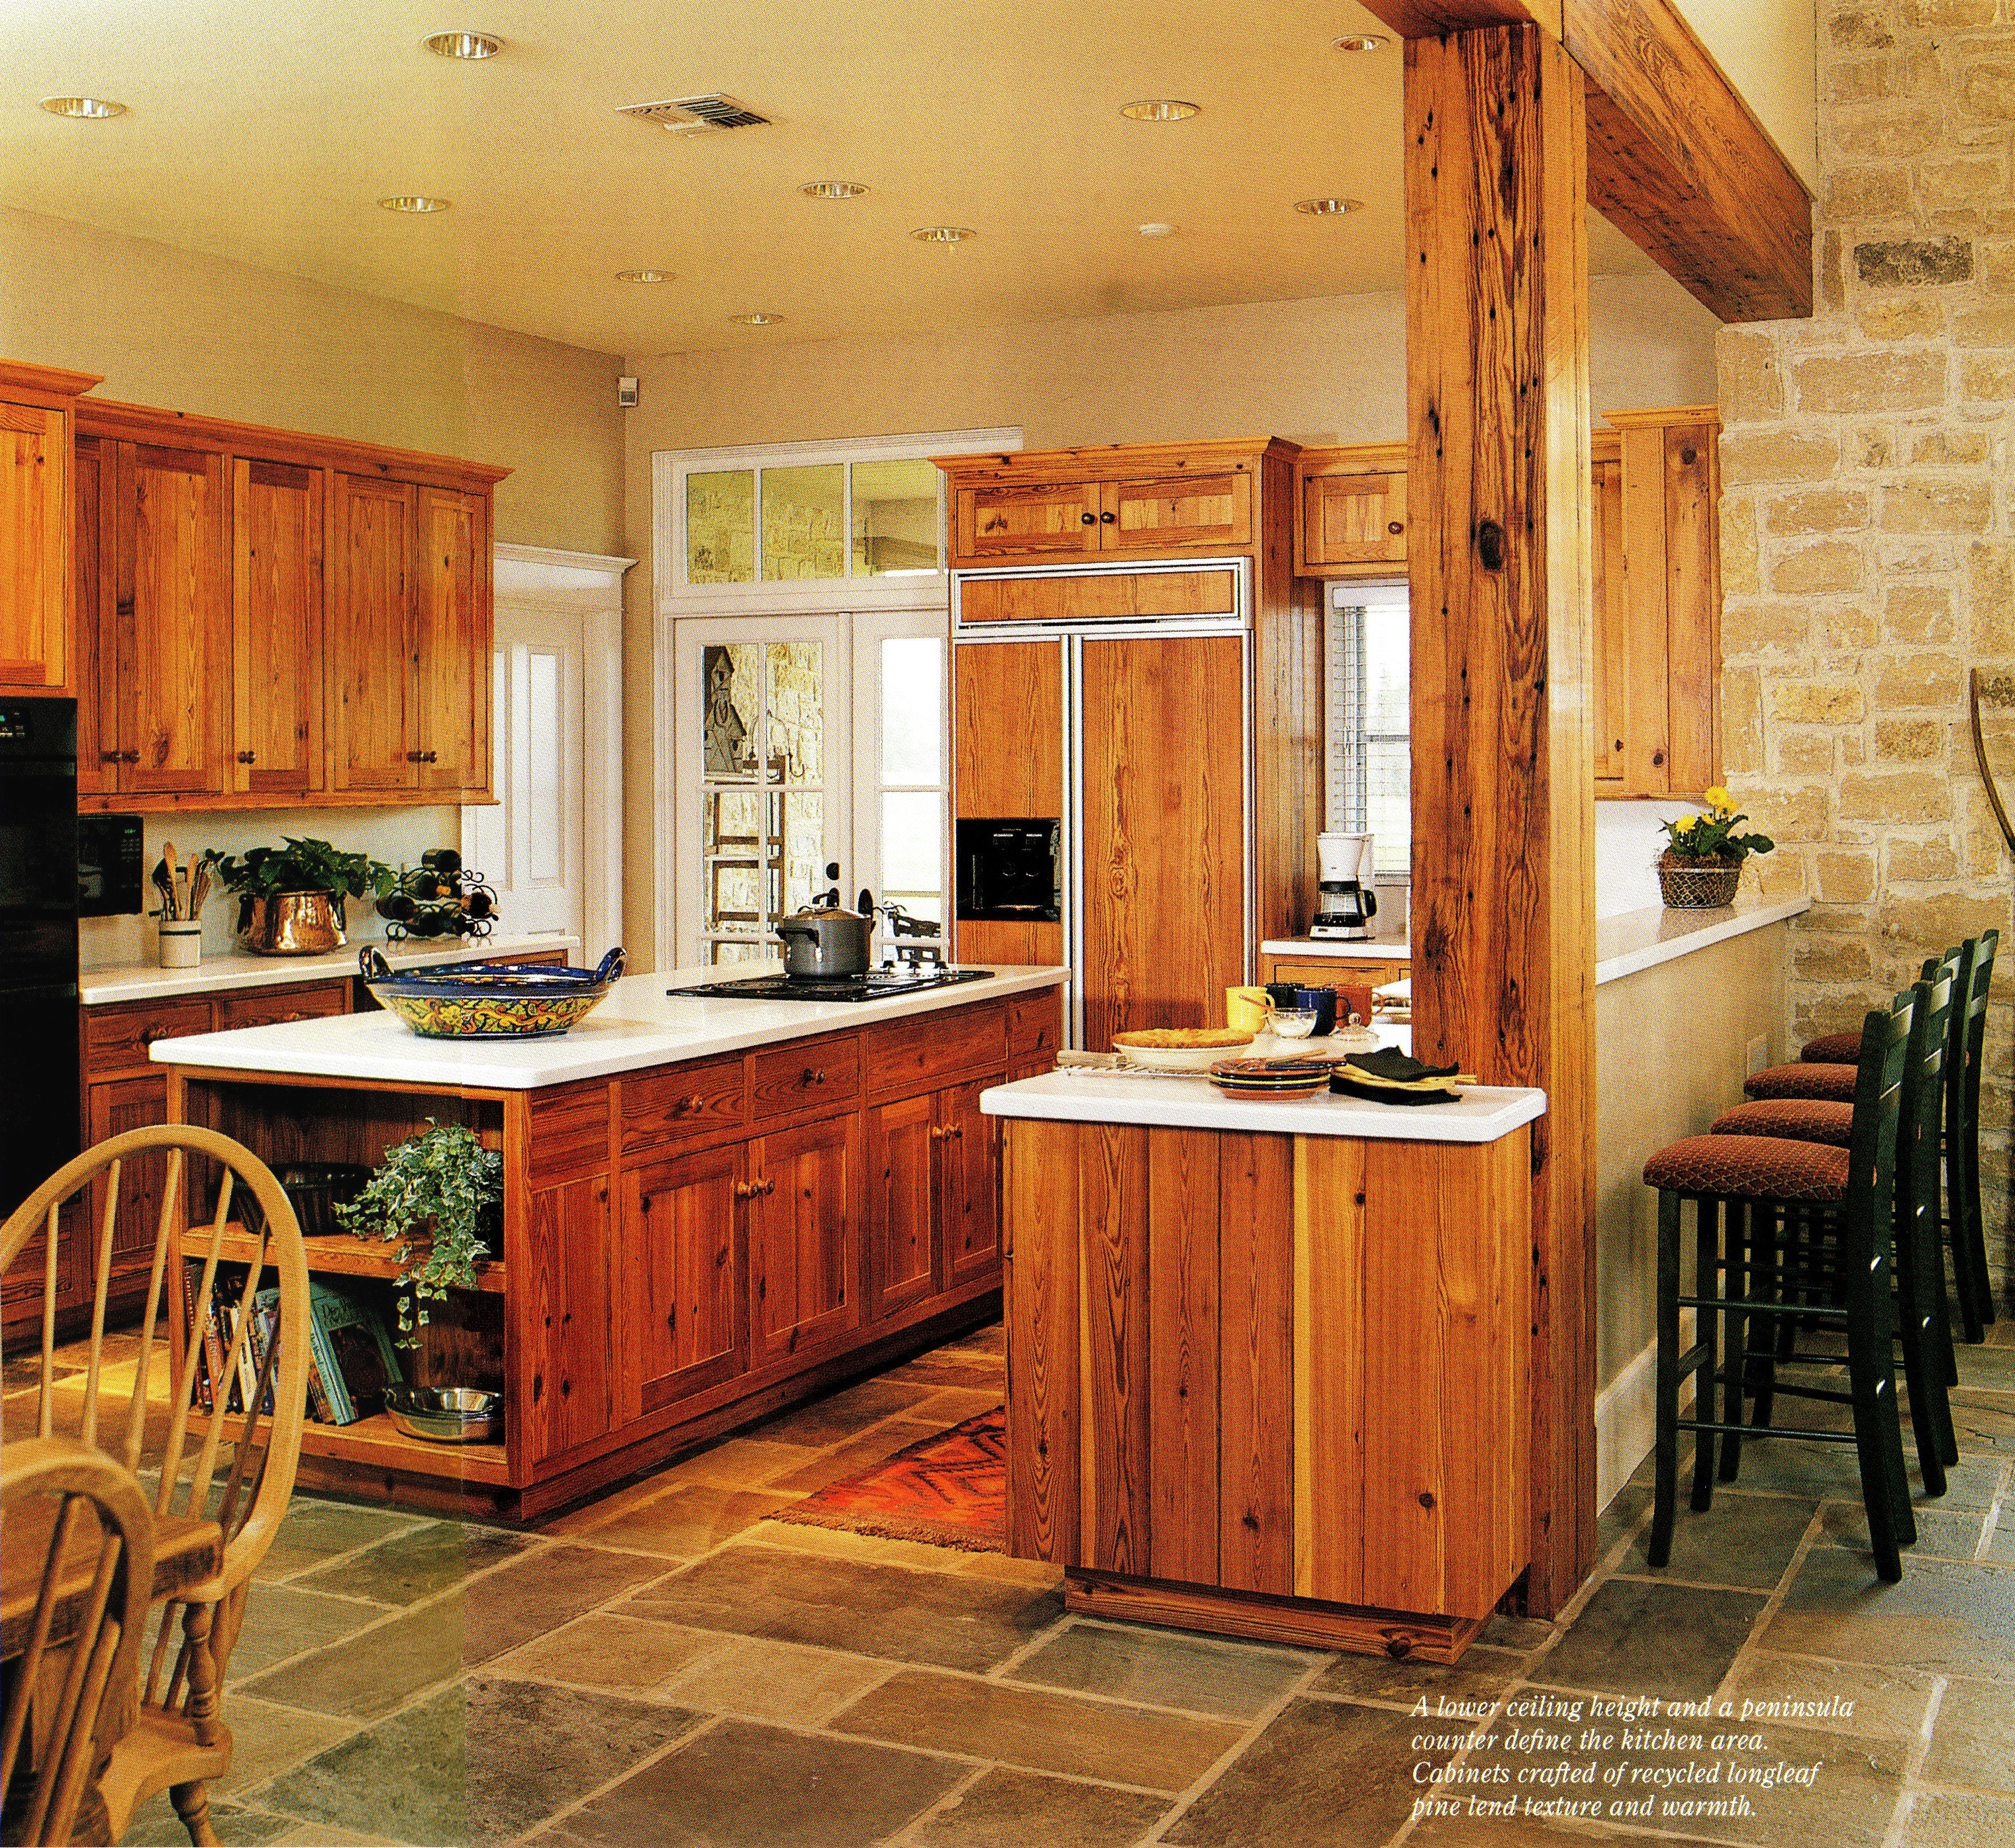 Rustic,Texas, Colorado, Oklahoma Architect, Architects, Architecture firm, firms, company, companies. Blue prints, Design, CAD